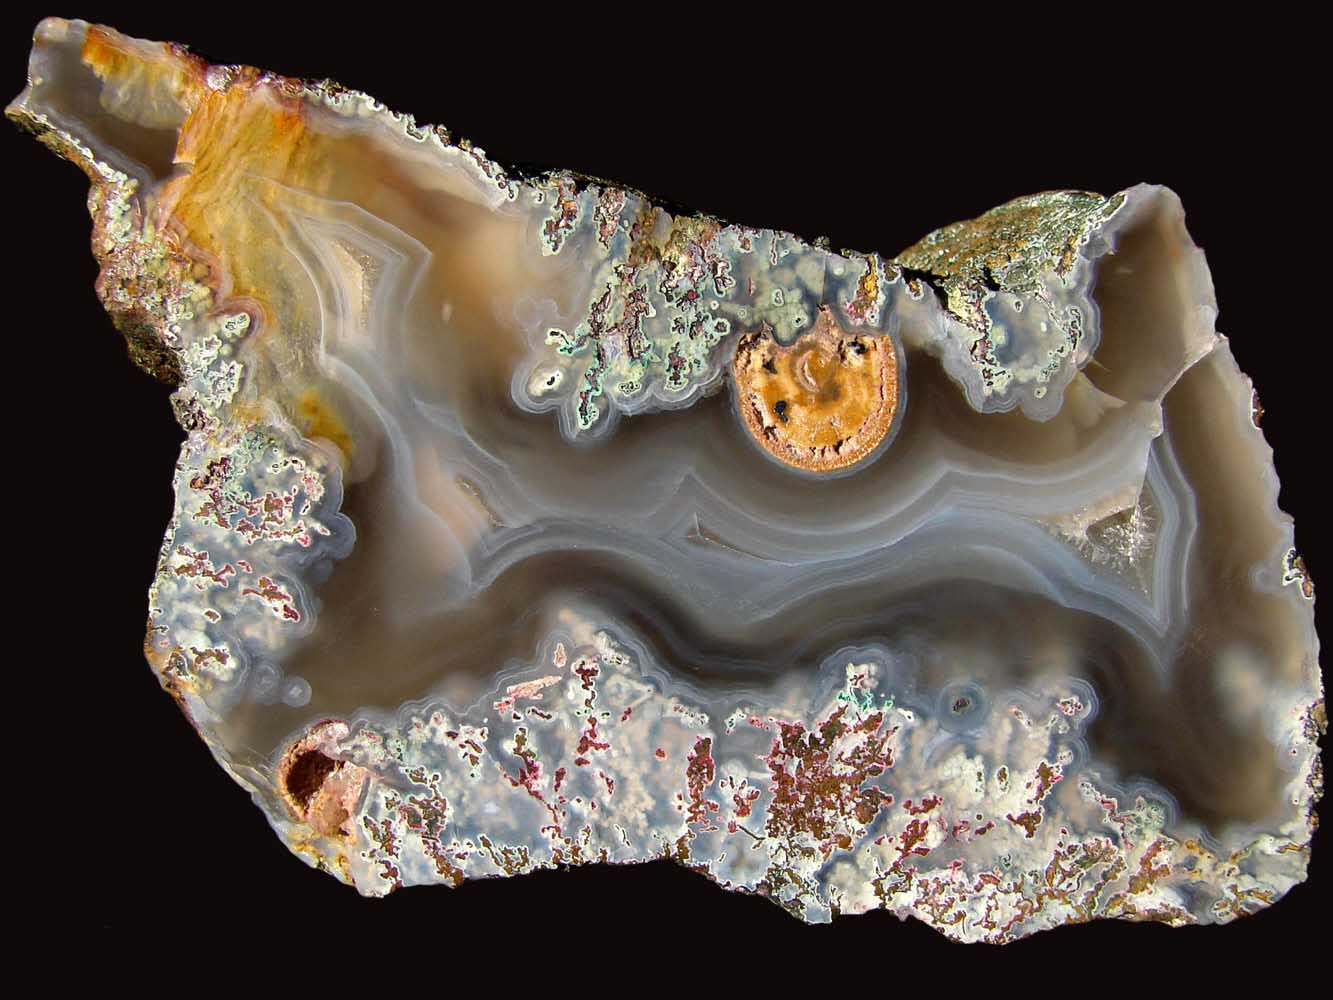 Agates From Hungary